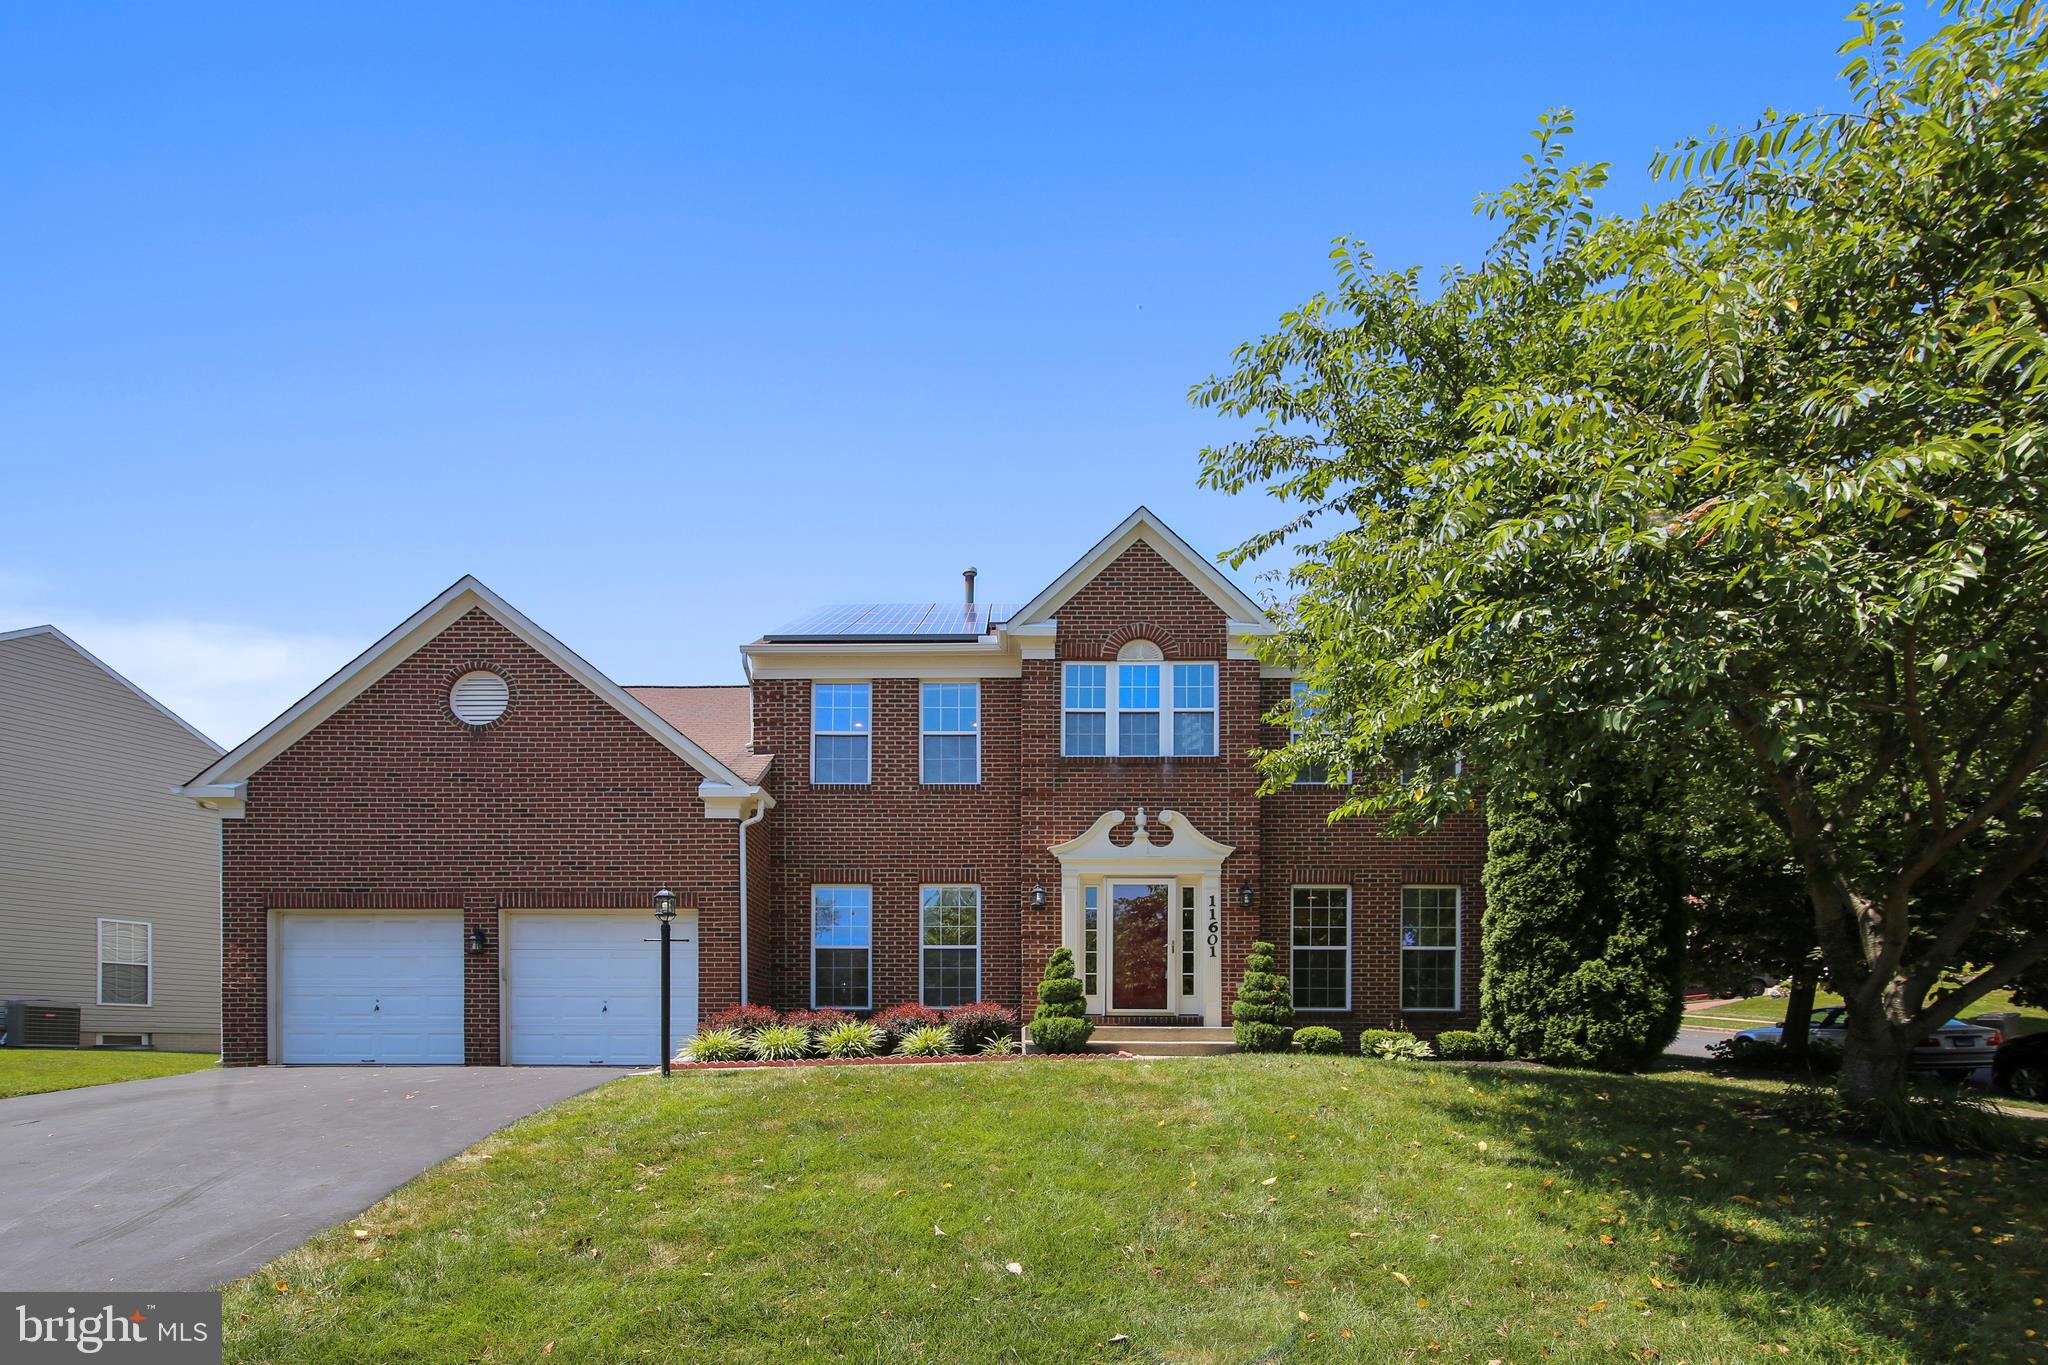 11601 TALL PINES DRIVE, GERMANTOWN, MD 20876